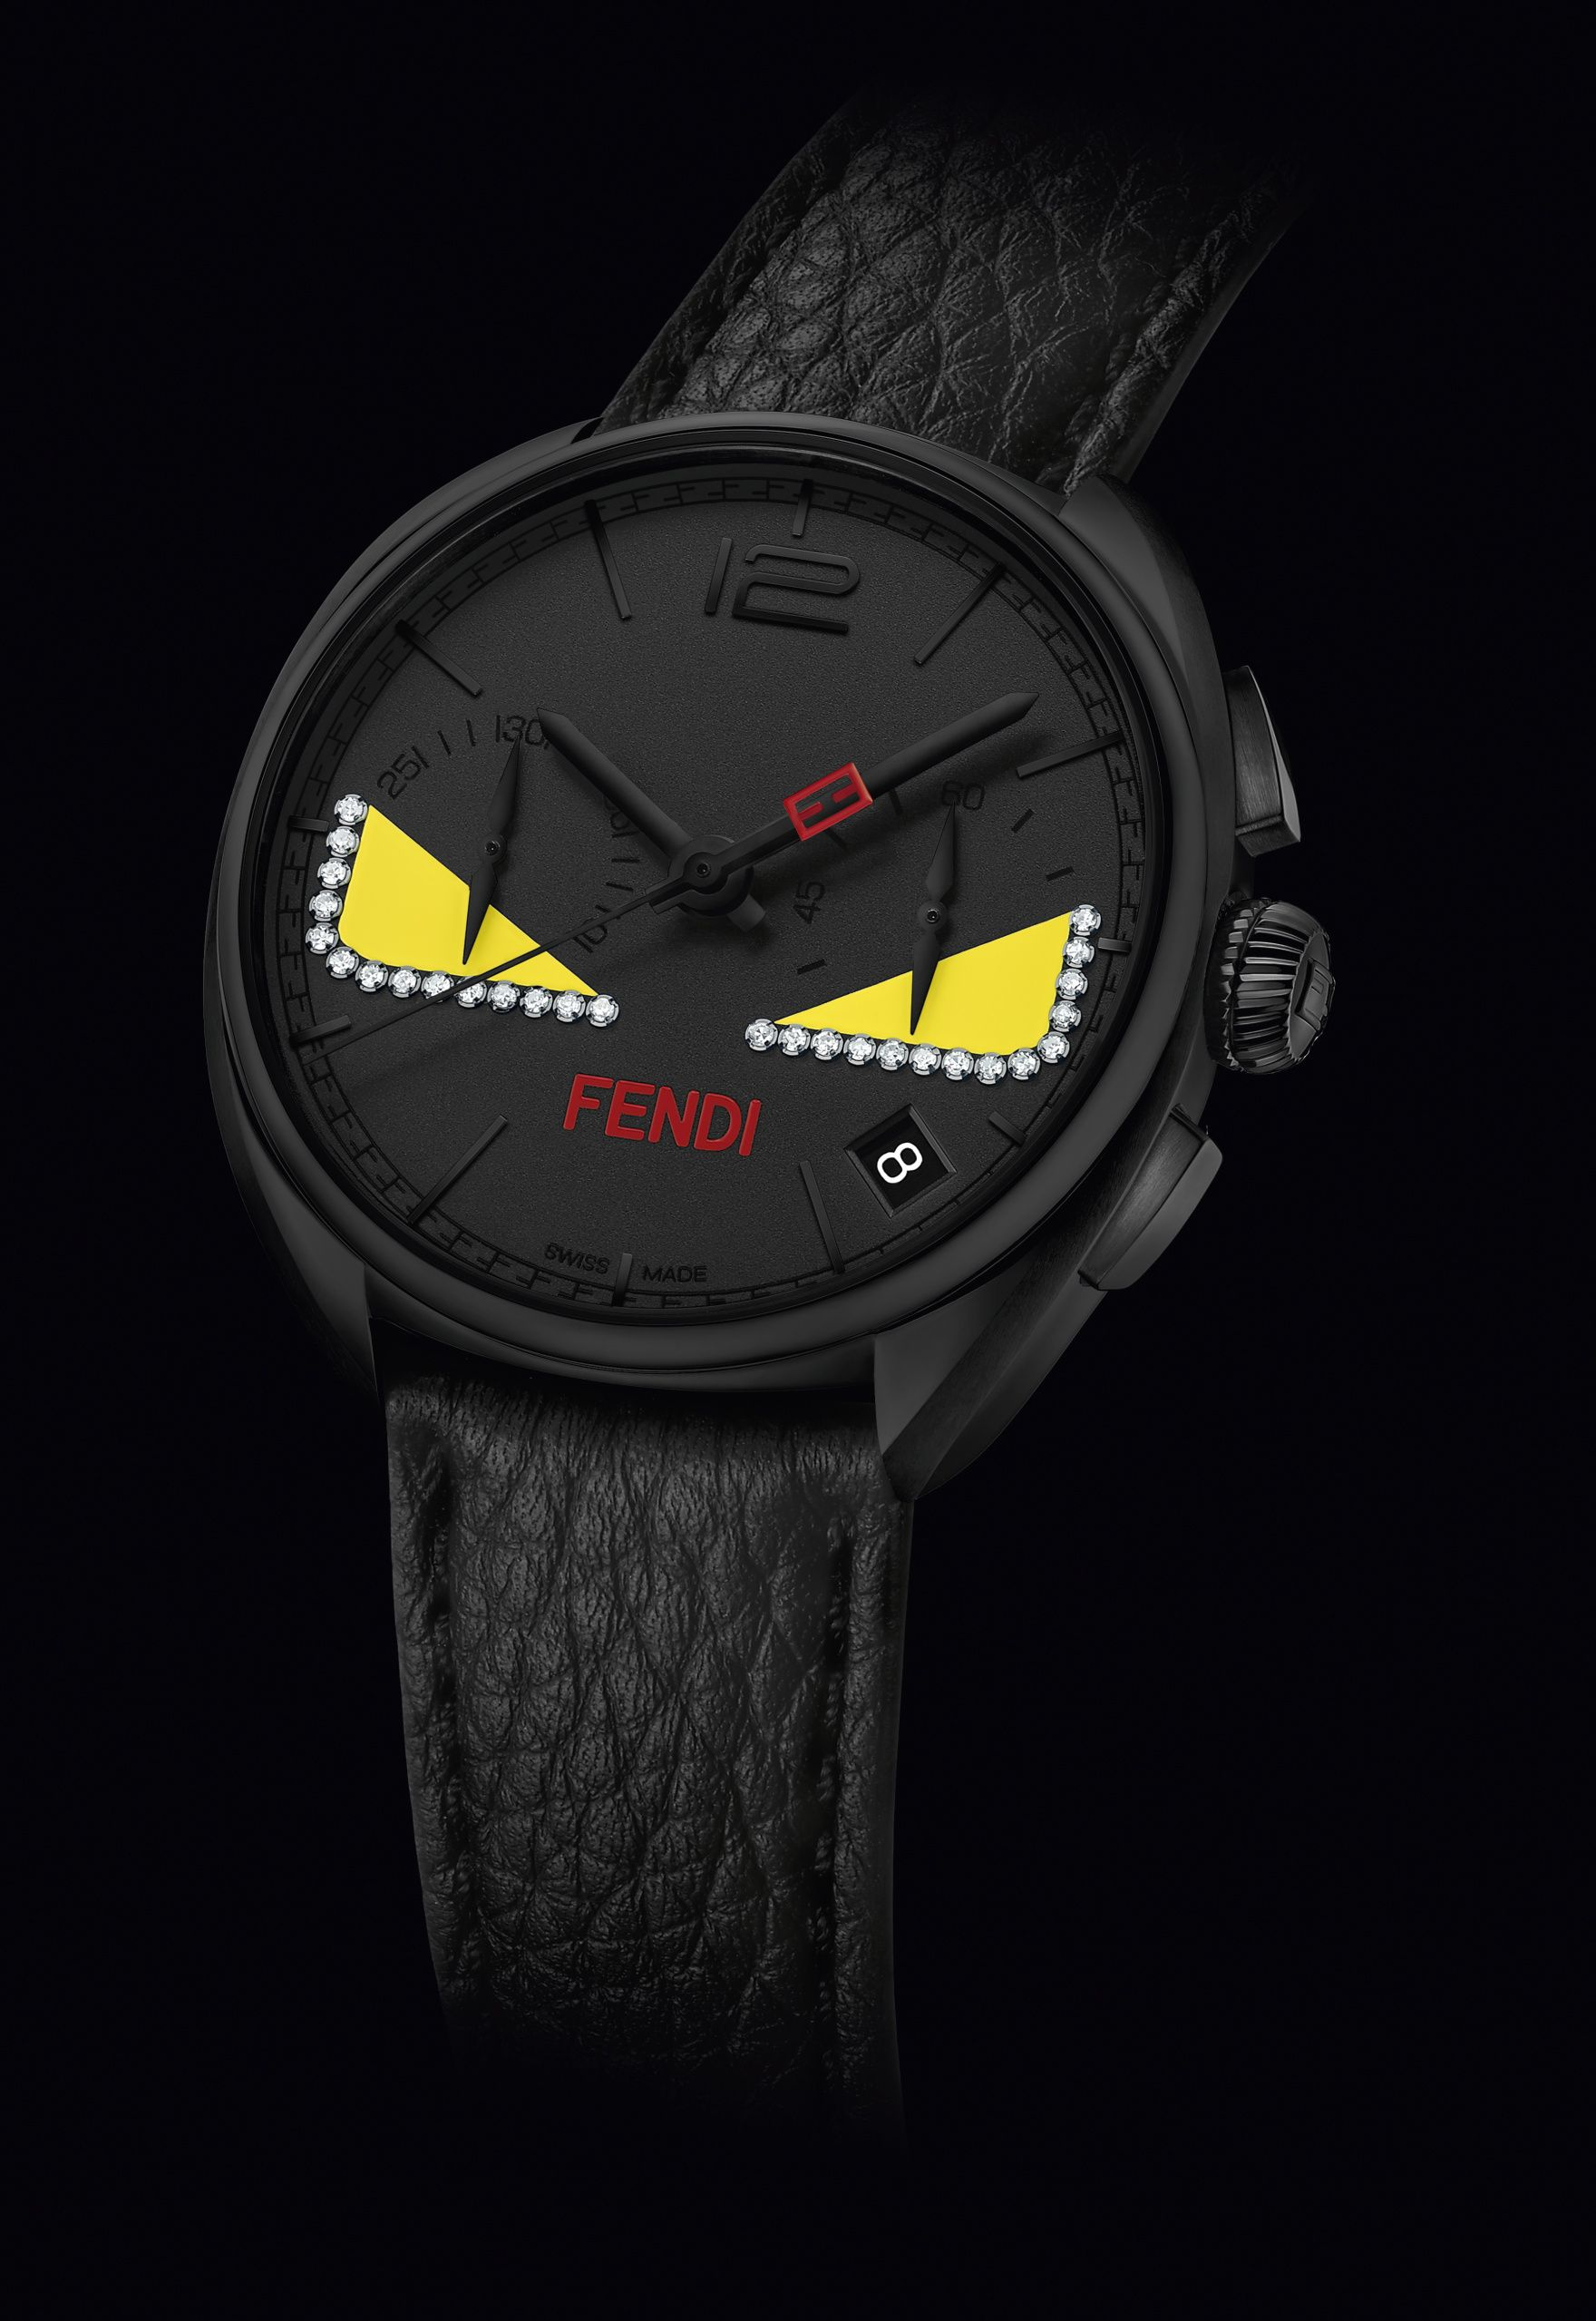 7be6644ef7a6 The Fendi Momento Bugs watch which debuted at the Men s Fall Winter 2015-16  runway